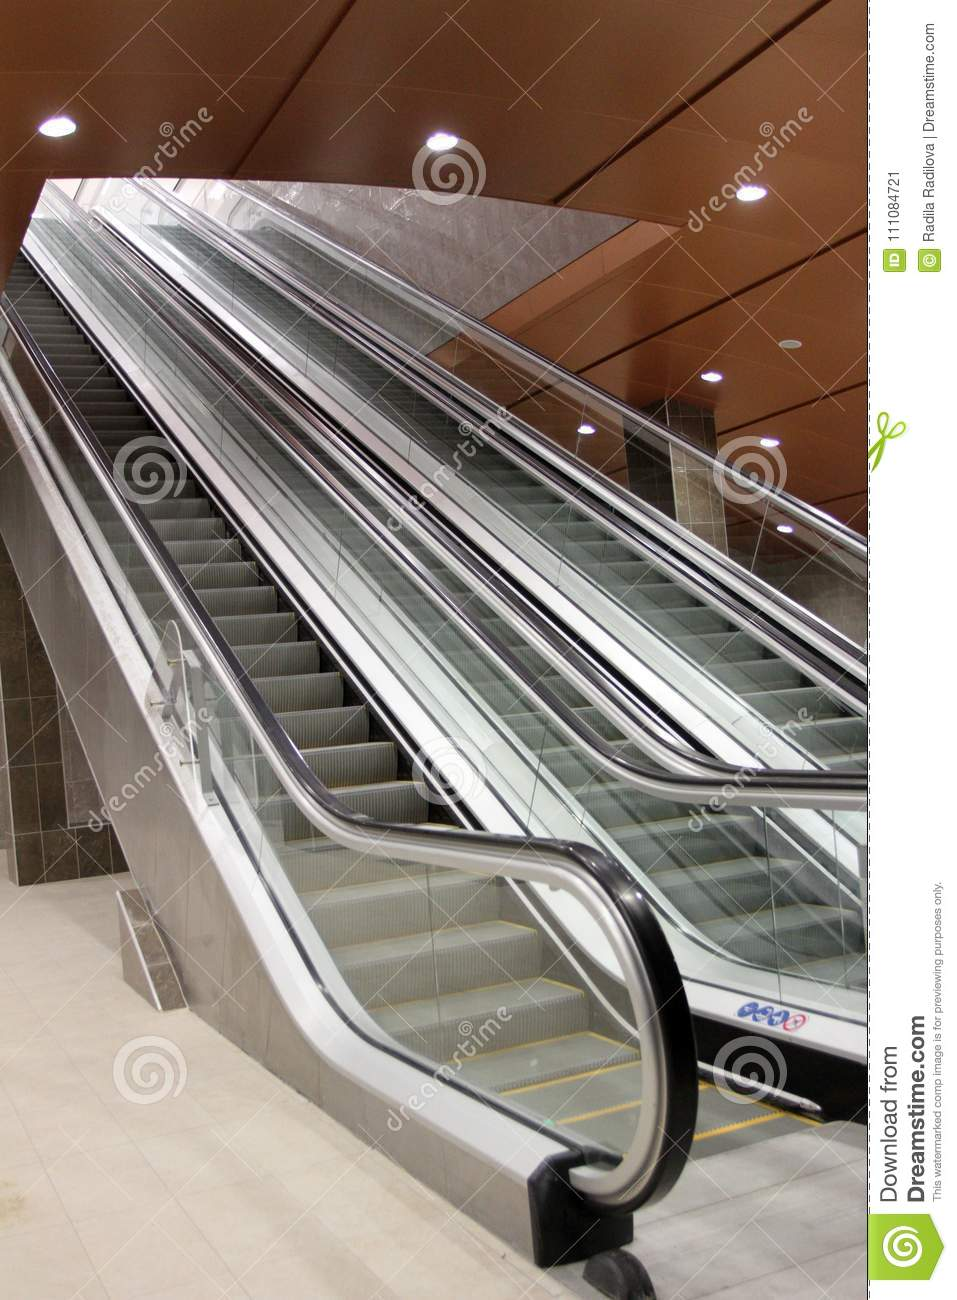 Amazing Download Escalator Or Moving Staircase Stock Image   Image Of Down,  Business: 111084721